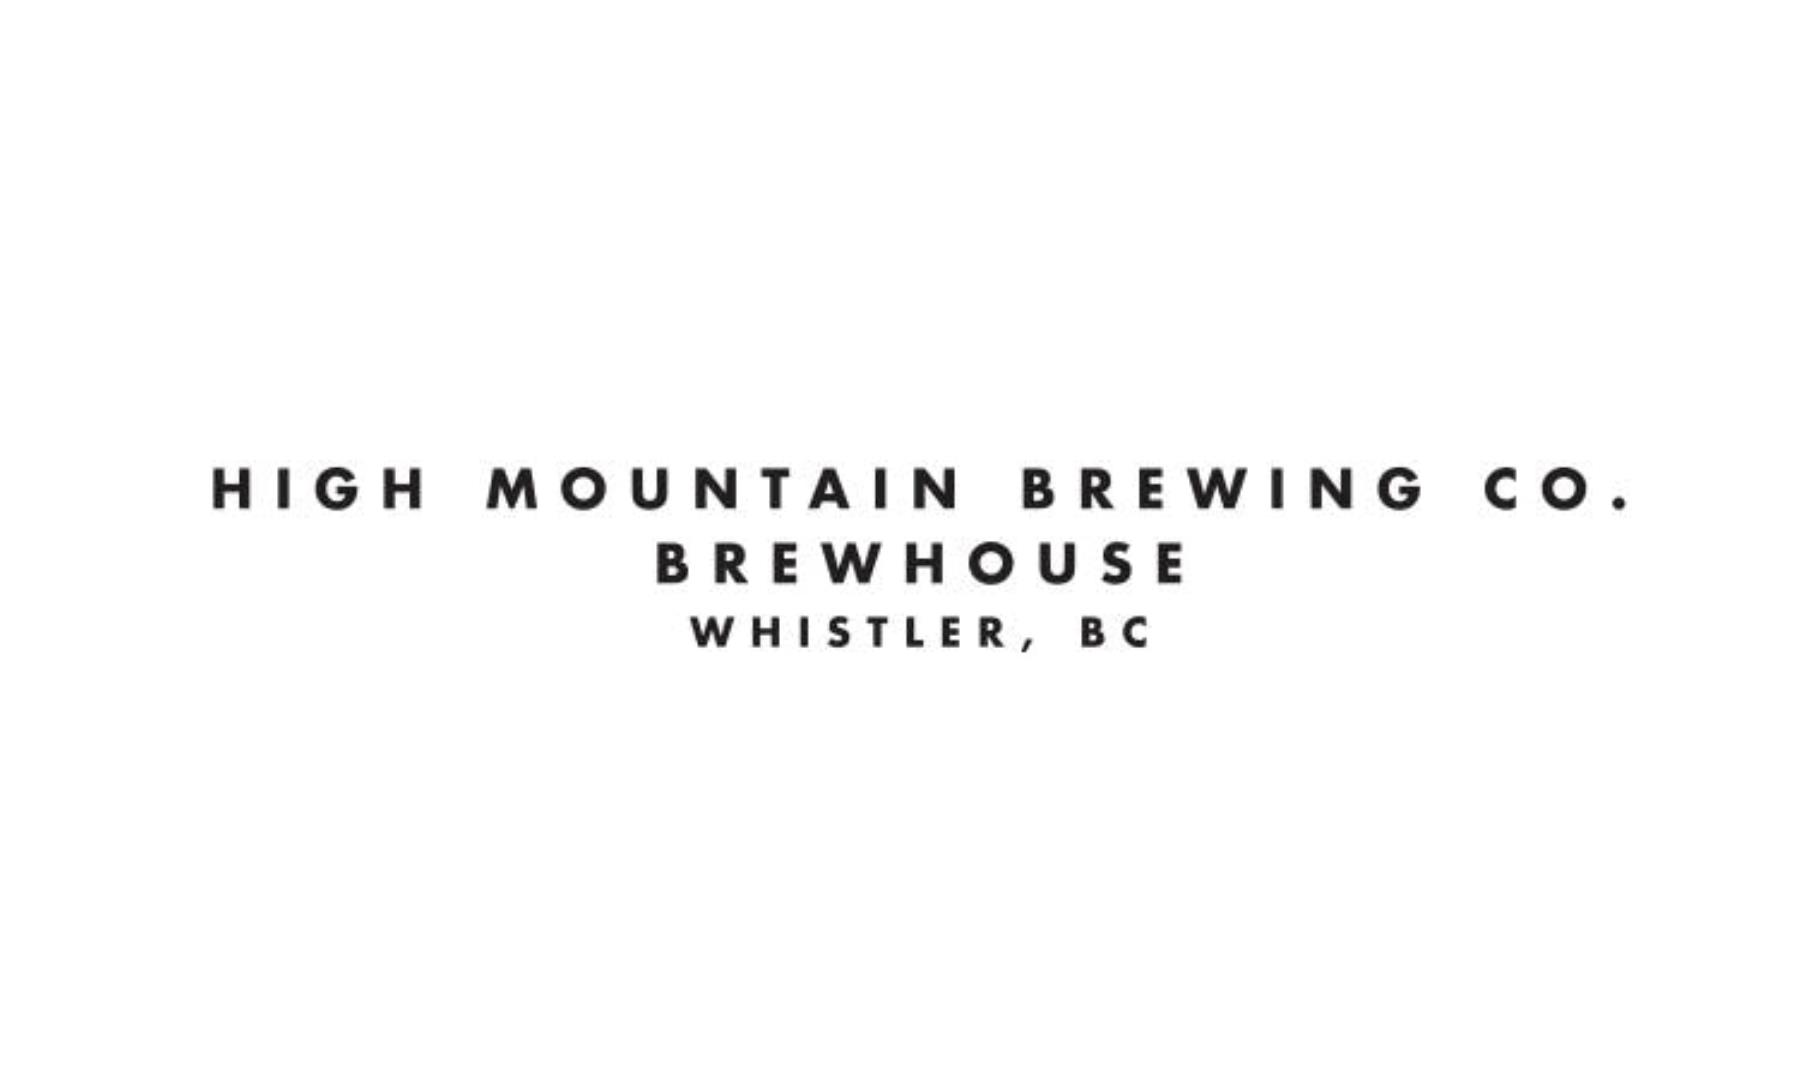 High Mountain Brewing Co. Brewhouse Restaurant - Picture